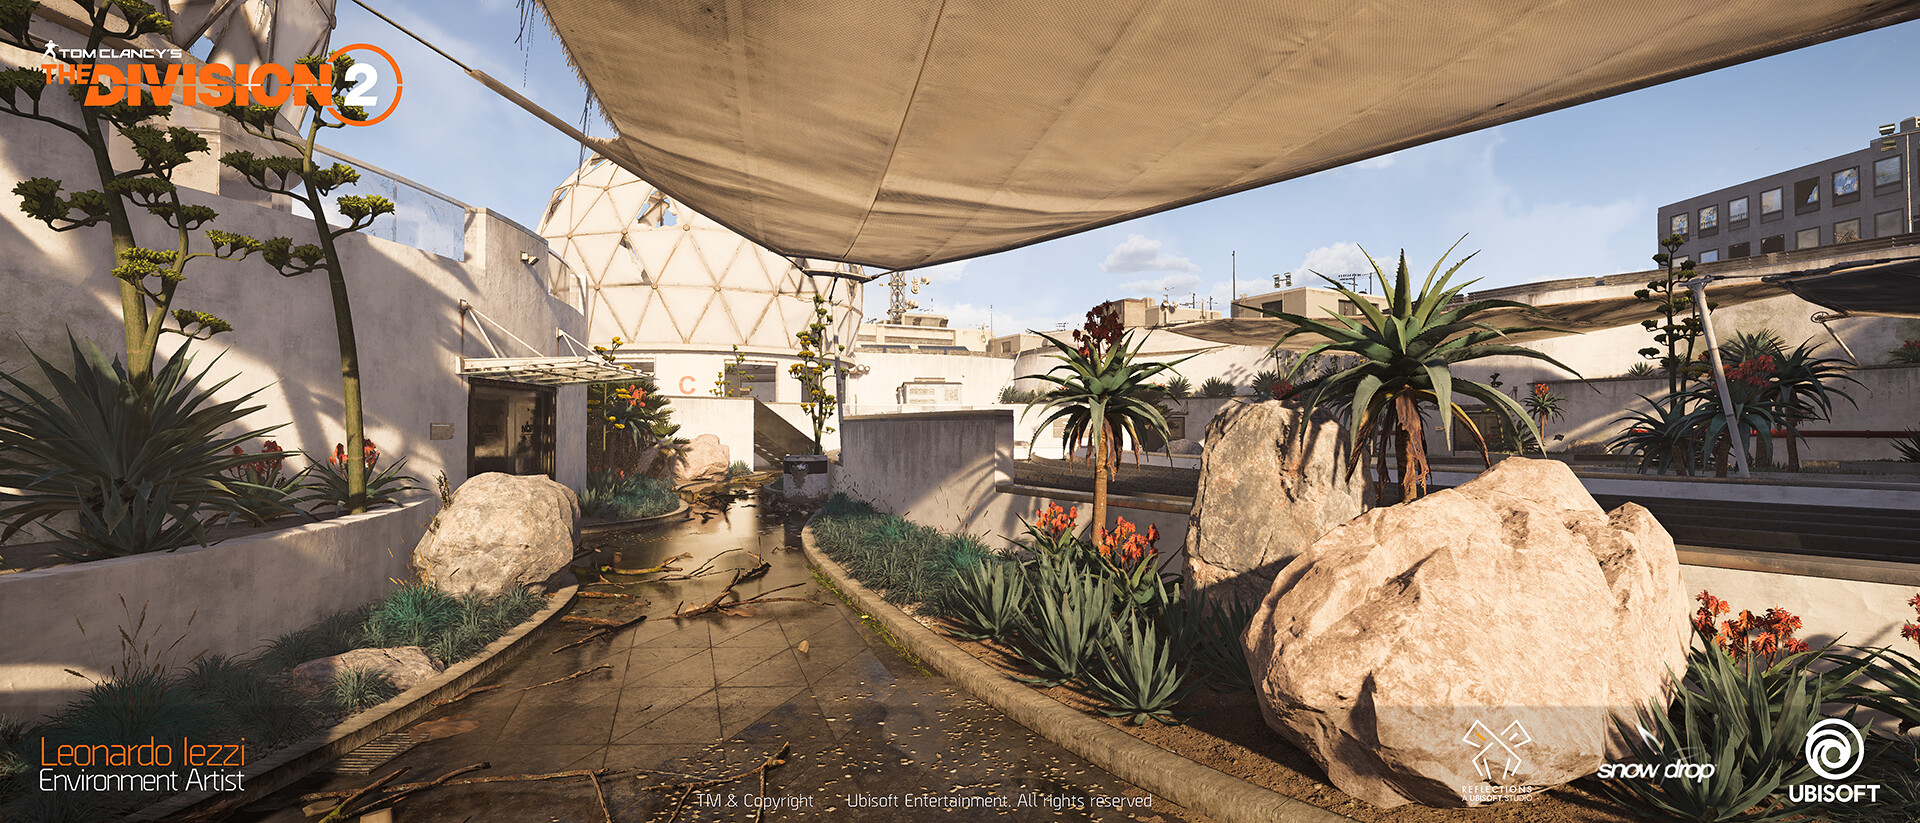 Leonardo iezzi leonardo iezzi the division 2 environment art 04 rooftop 011 wide